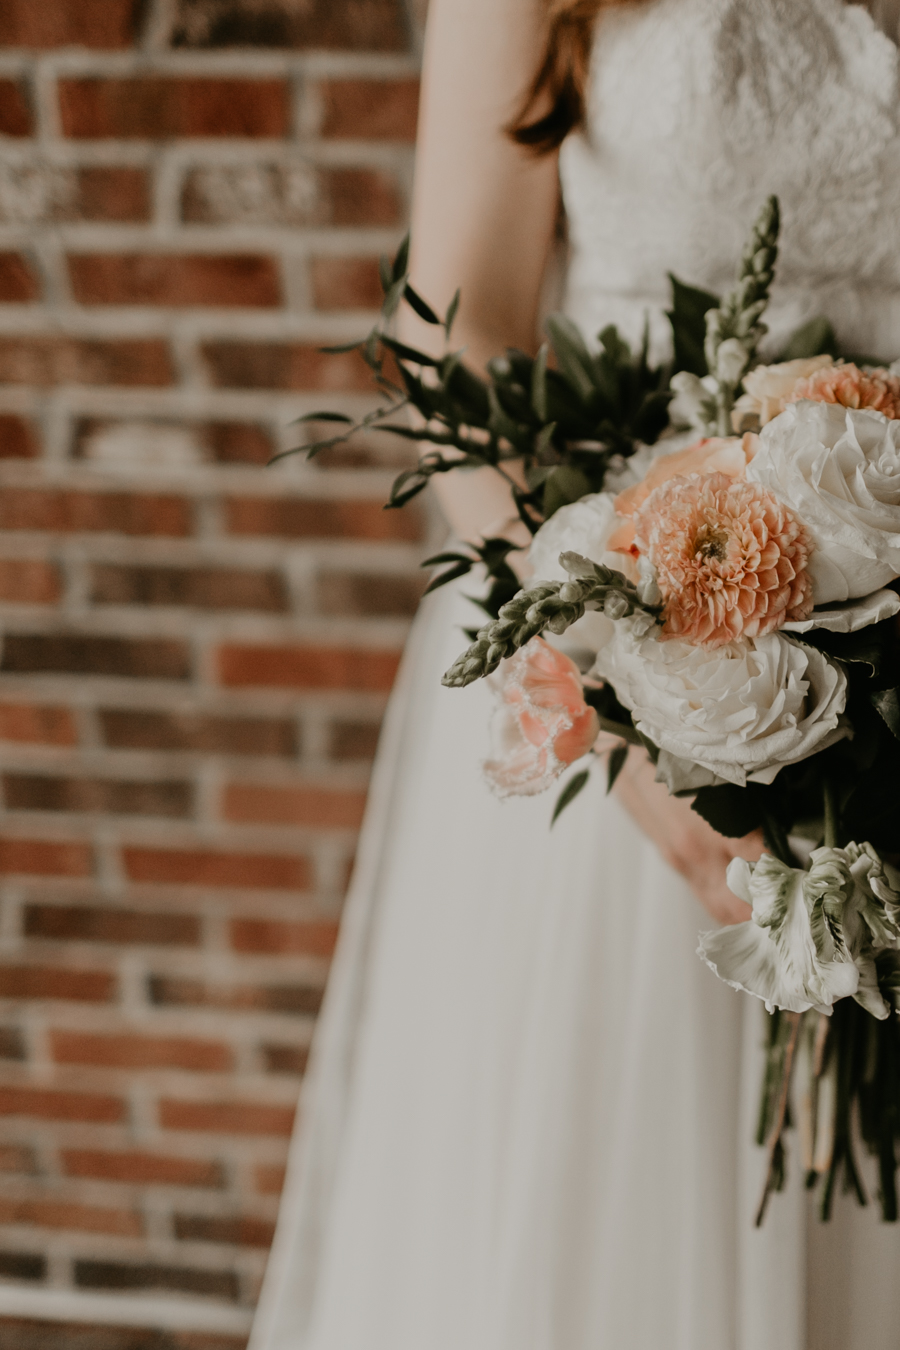 Stephanie And Kent Bailey Tampa Florida Romantic Wedding At Coppertail Brewery in Ybor Florist Fire BHLDN Mis En Place Ibex String Quartet Let Them Eat Cake -77.jpg